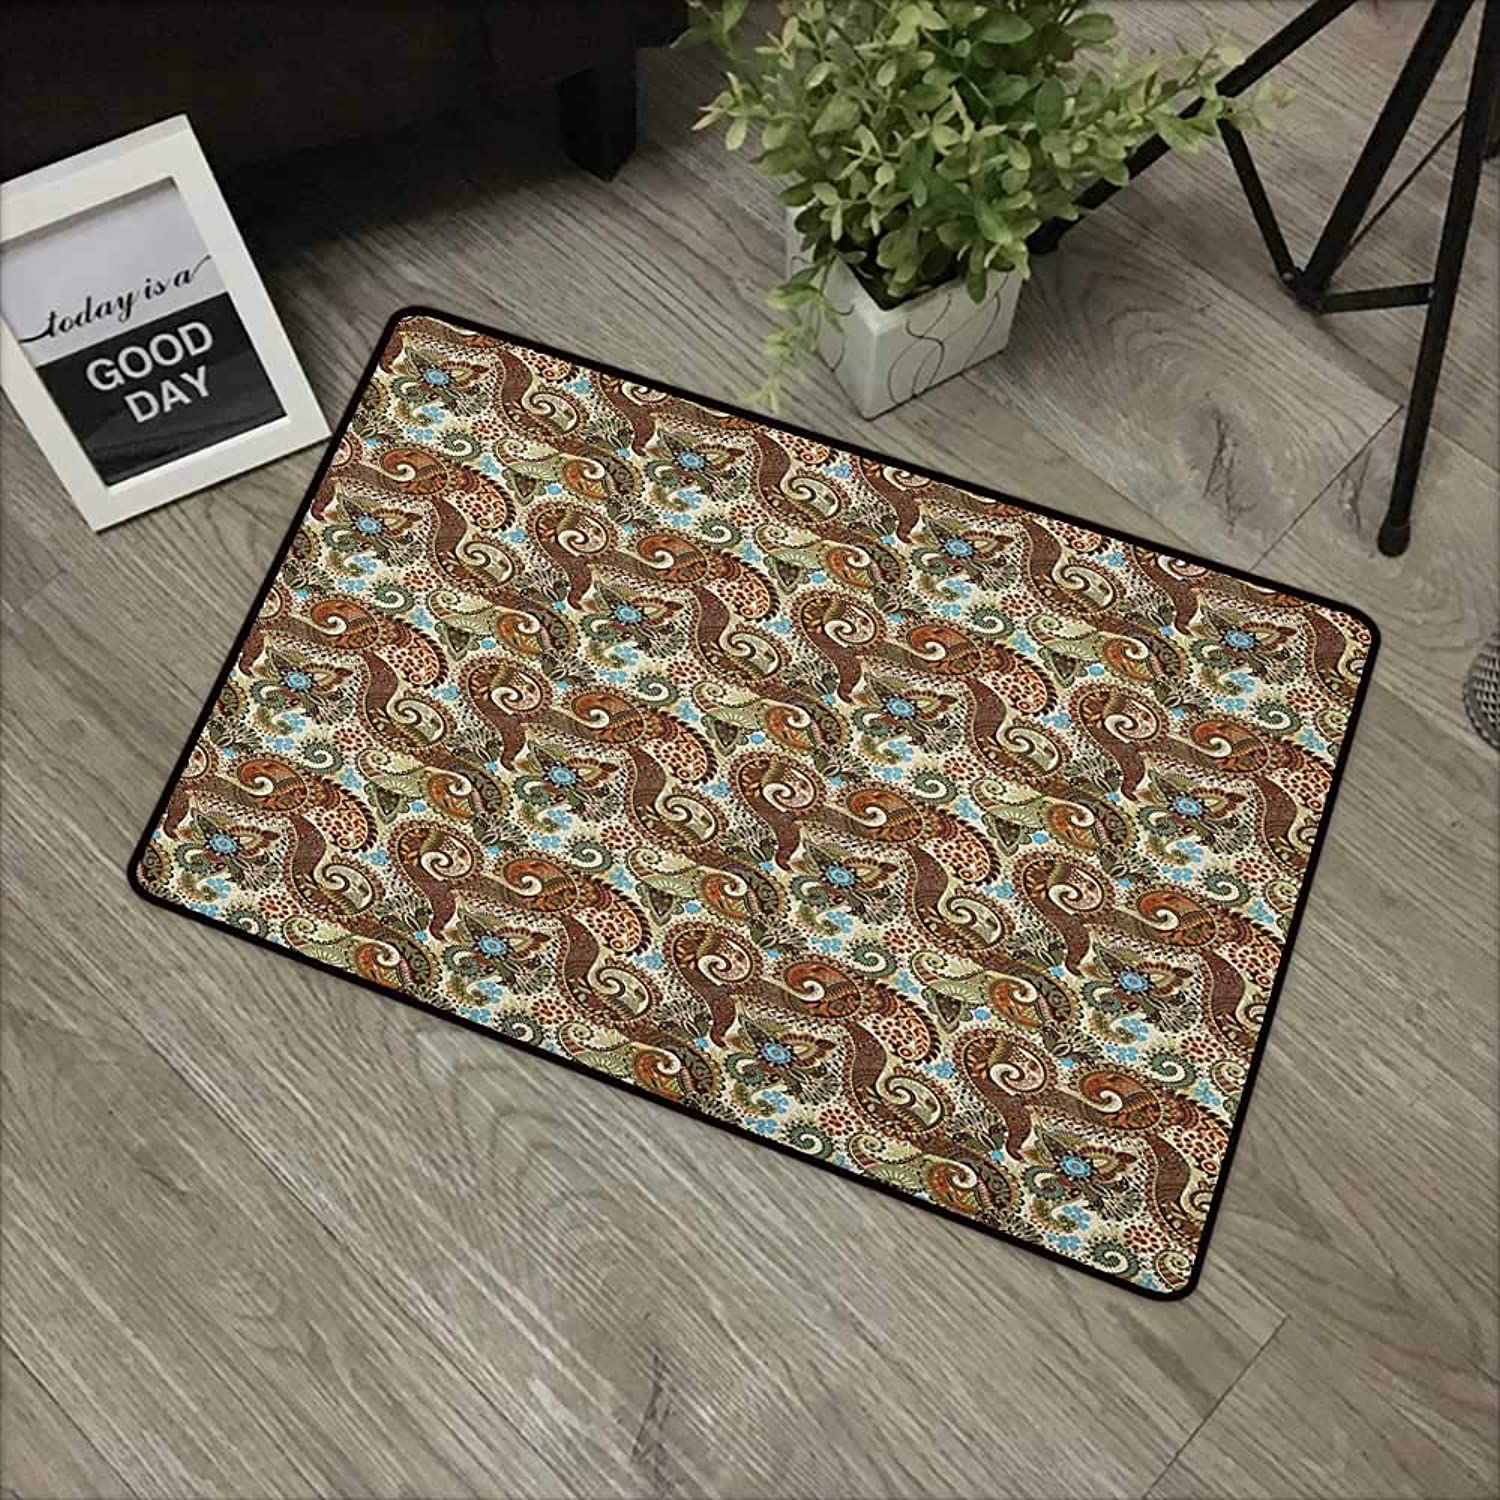 Bathroom Door mat W35 x L59 INCH Paisley,Flower Blossoms in Arabian Style Ethnic Pattern Antique Swirled Authentic Design, Multicolor Easy to Clean, Easy to fold,Non-Slip Door Mat Carpet